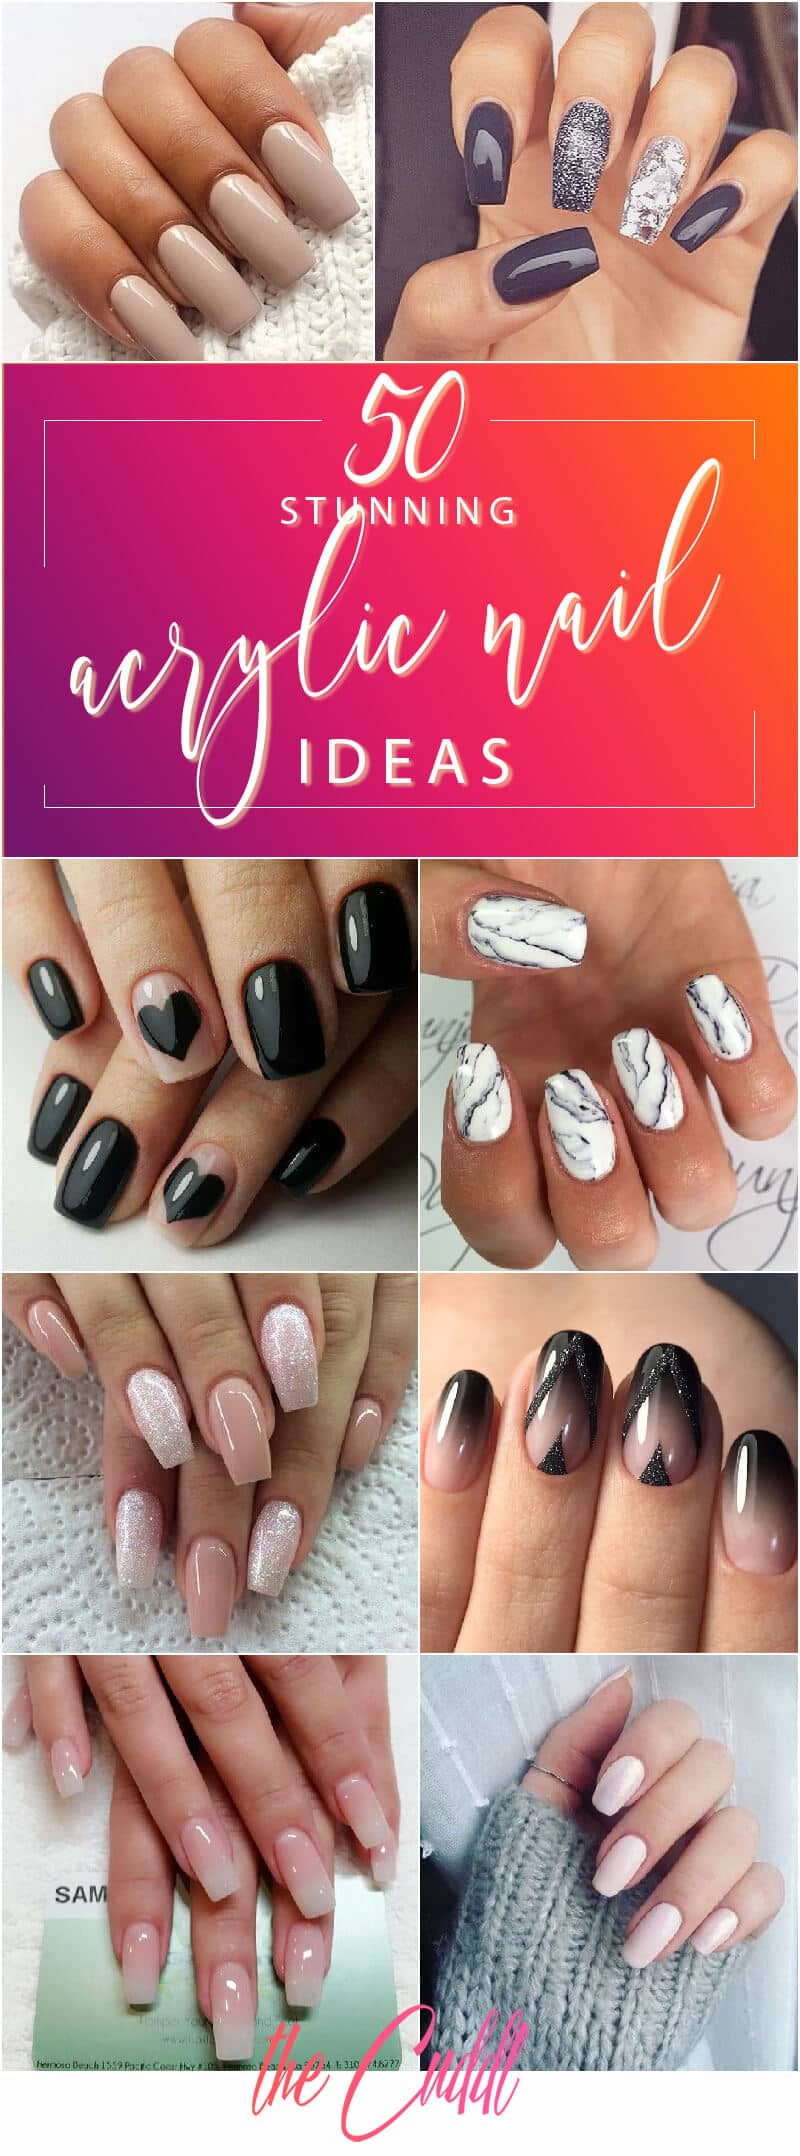 Stunning Acrylic Nail Ideas to Express Your Personality